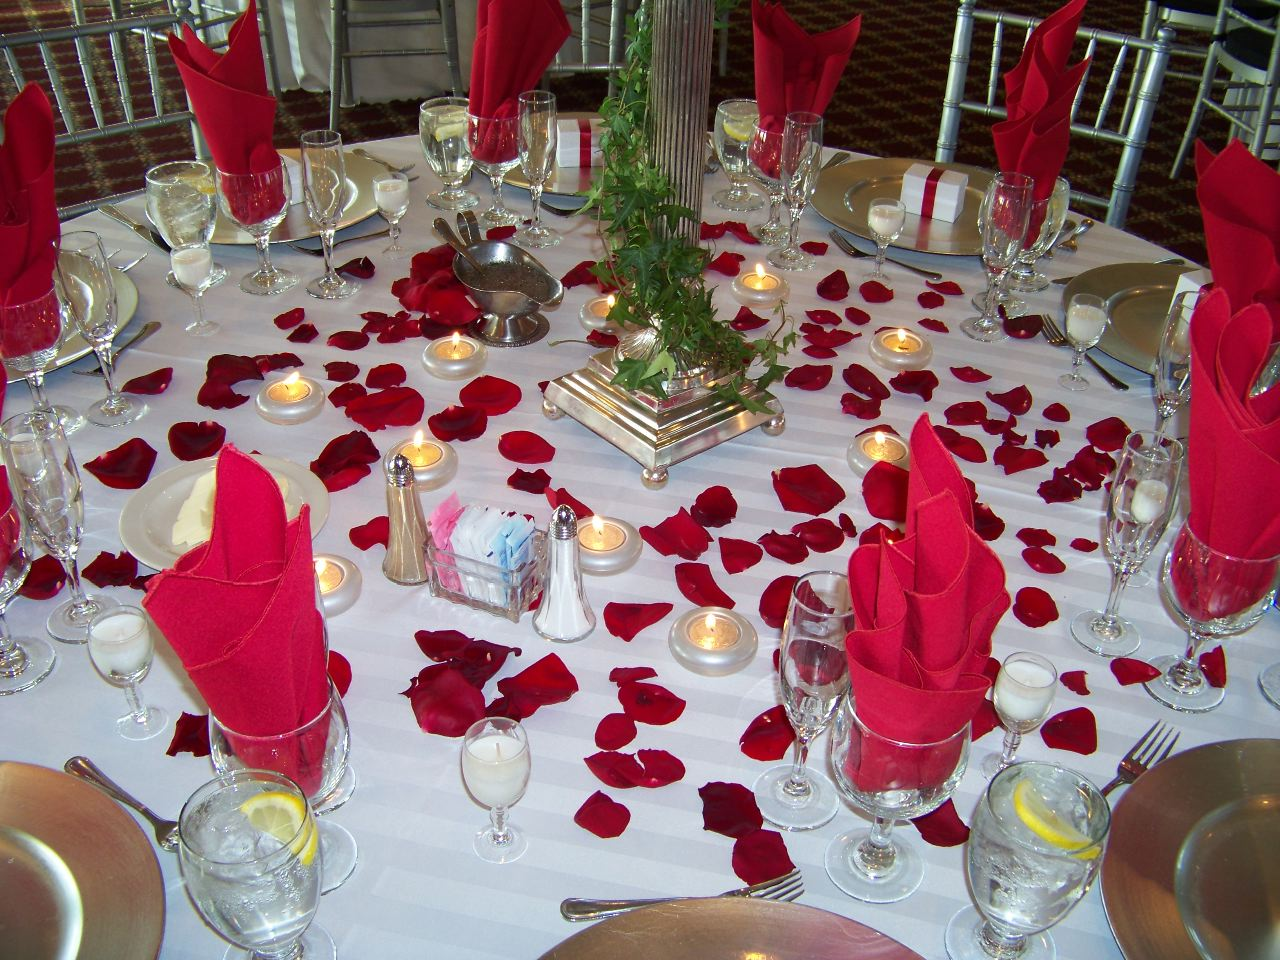 Home Decor Tips: Wedding Reception Decorations With Balloons